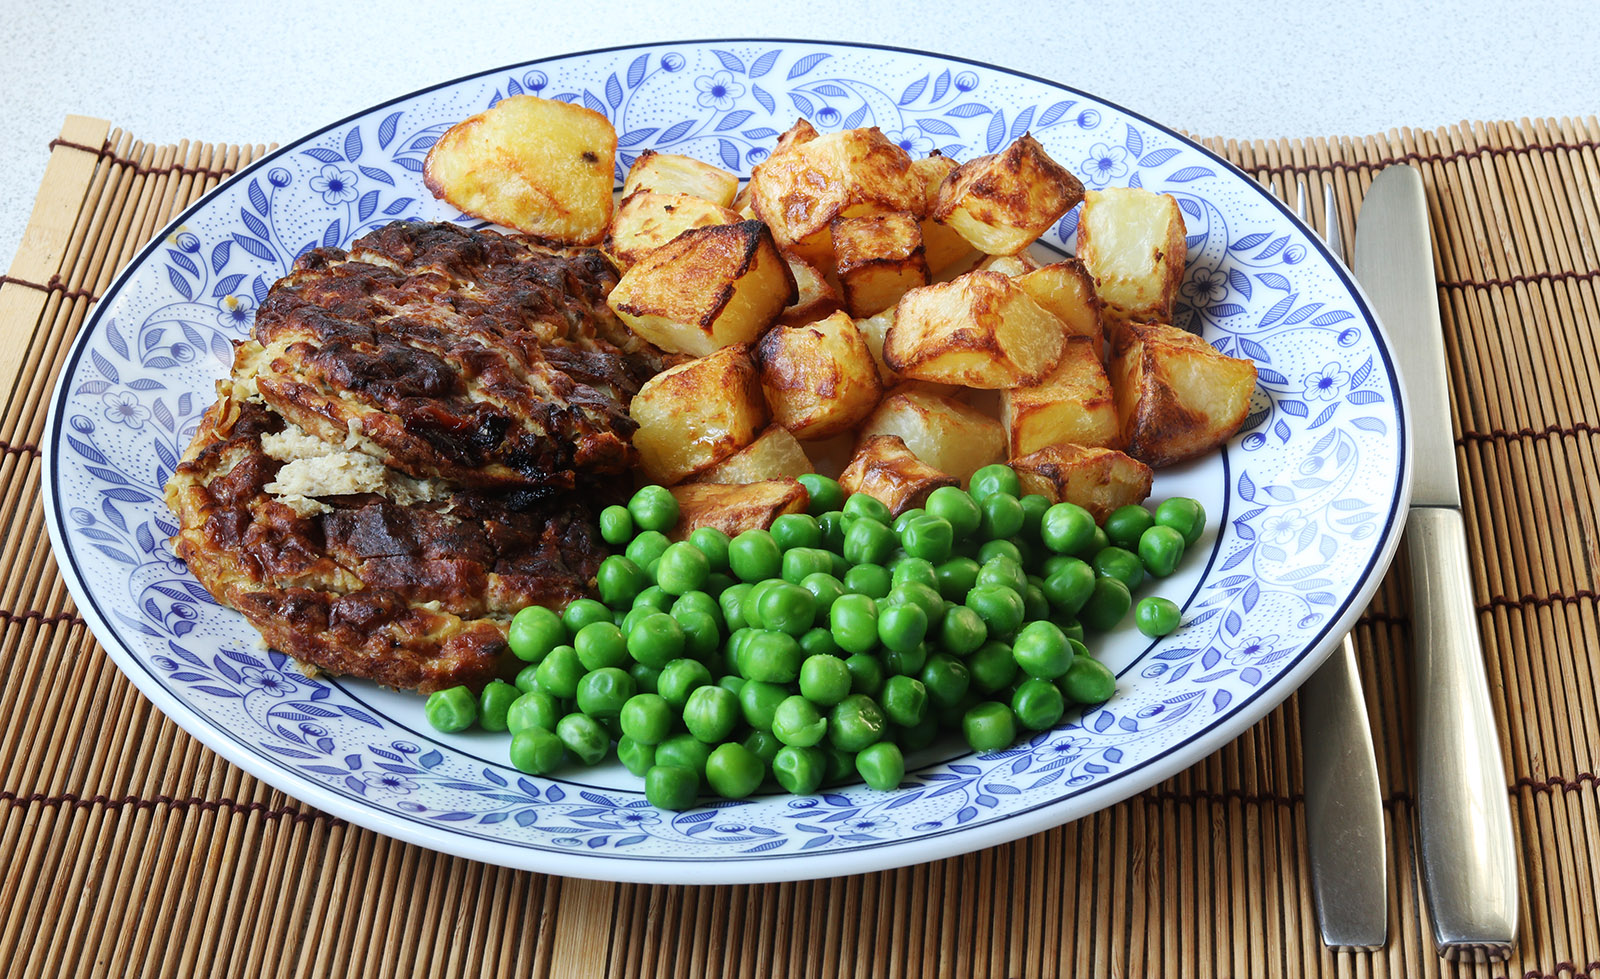 Haslet, roast potatoes, peas s.jpg